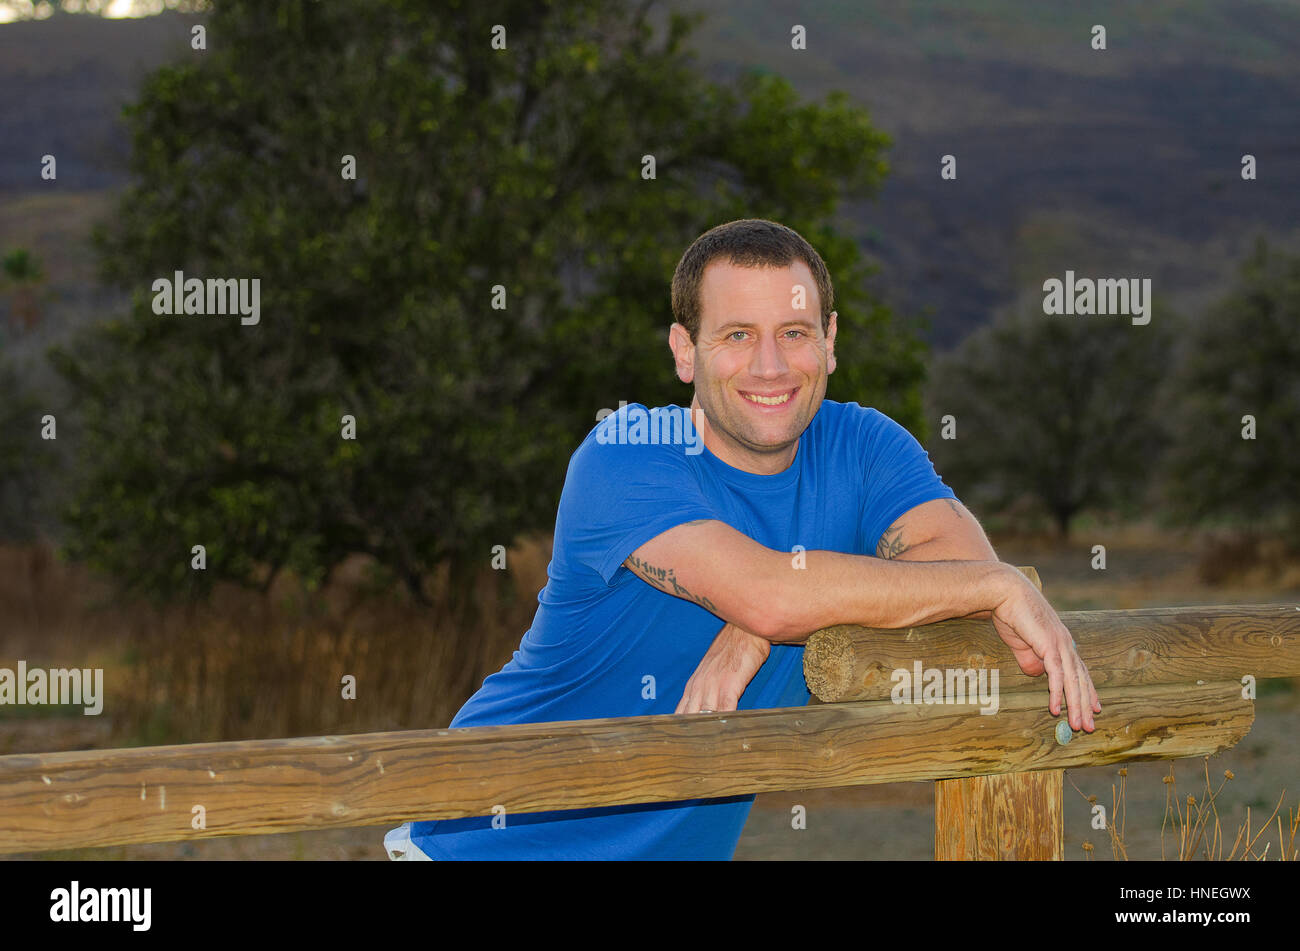 Smiling man leaning on a wooden fence enjoying the outdoors - Stock Image